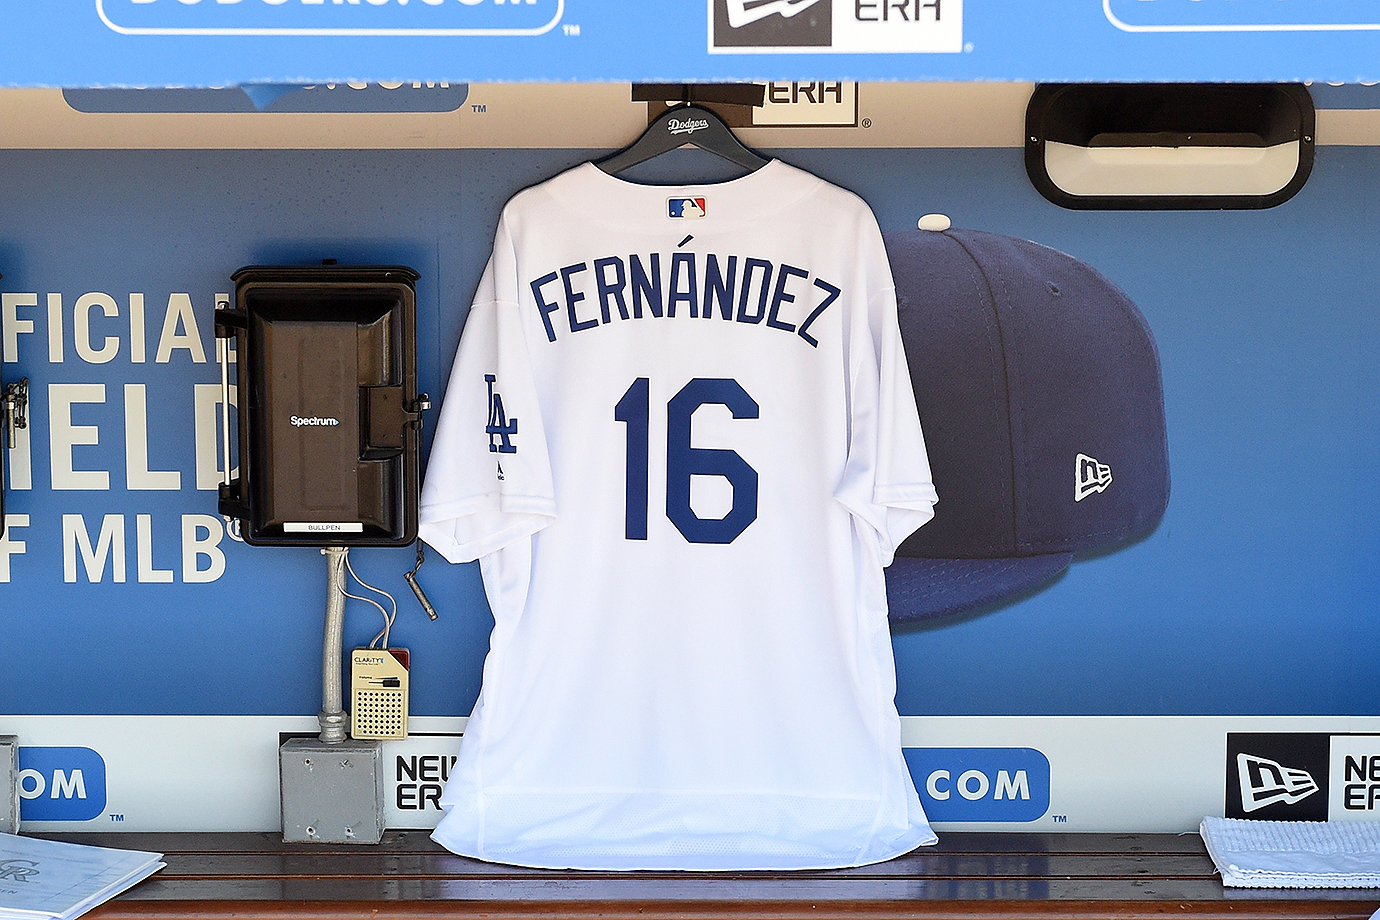 A Jose Fernandez Dodgers jersey hangs in the Los Angeles dugout during a game against the Colorado Rockies on Sunday, Sept. 25, 2016 at Dodger Stadium in Los Angeles.